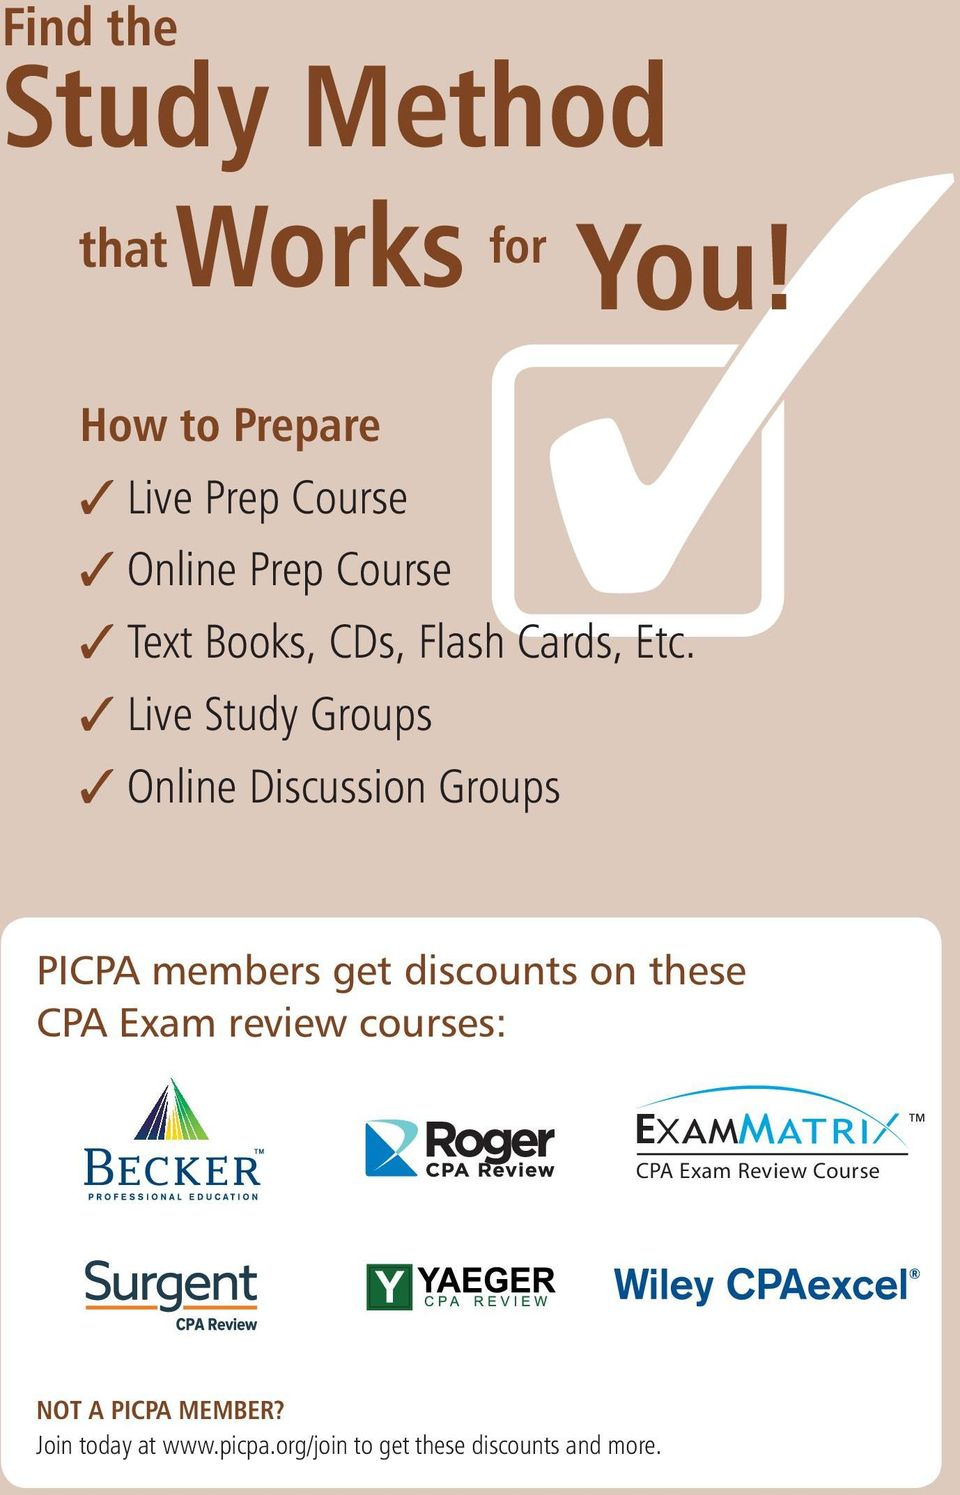 Live Study Groups Online Discussion Groups PICPA members get discounts on these CPA